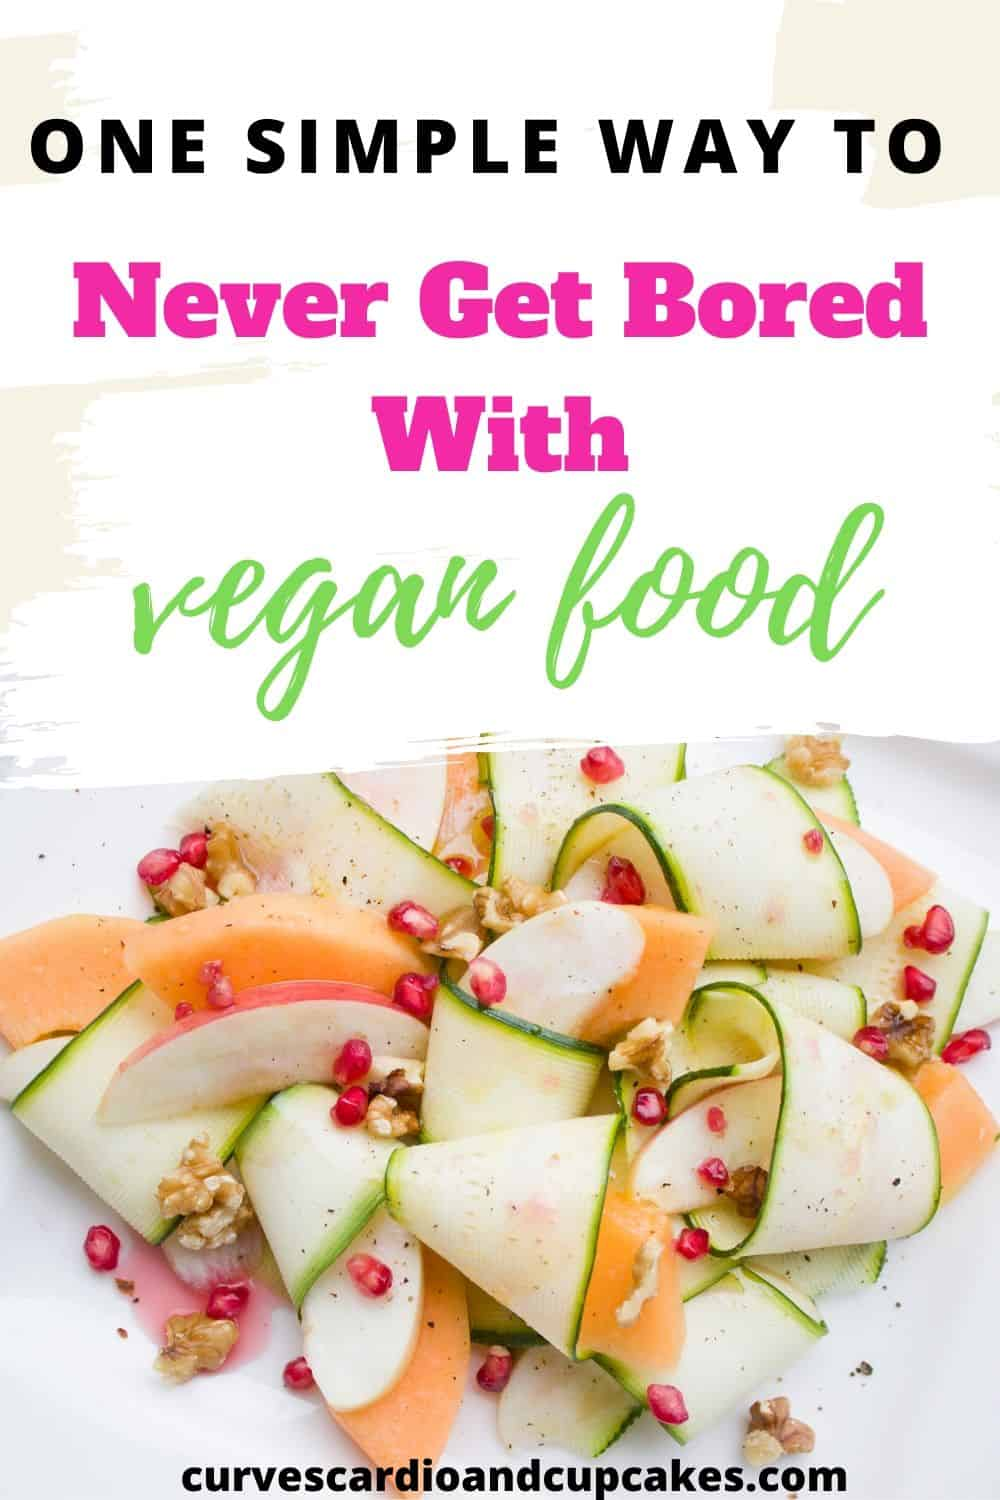 Are you getting bored with vegan food?  This one quick tip will help you live a vegan lifestyle without getting tired of the same old meals.  This post by a vegan blogger is great for beginners starting a plant based diet who want to avoid becoming bored and stay motivated to live a vegan life and be a success story of health change and inspiration to others.  #veganfoodideas #veganlifestyle